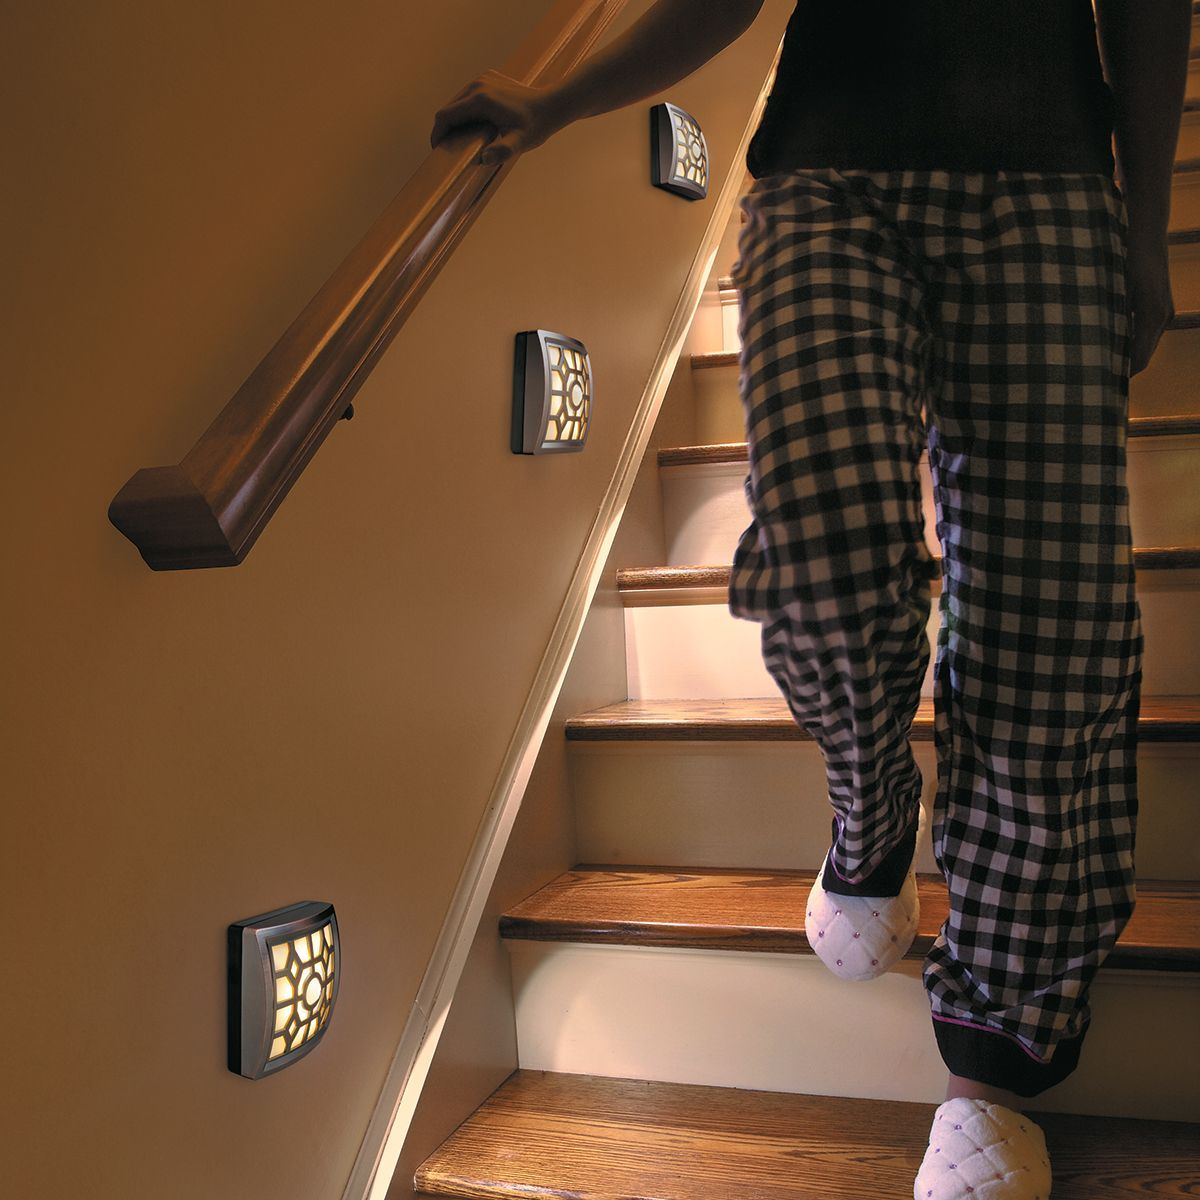 Soft Glow LED Motion Sensor Lights | Staircases, Lights and Stairways